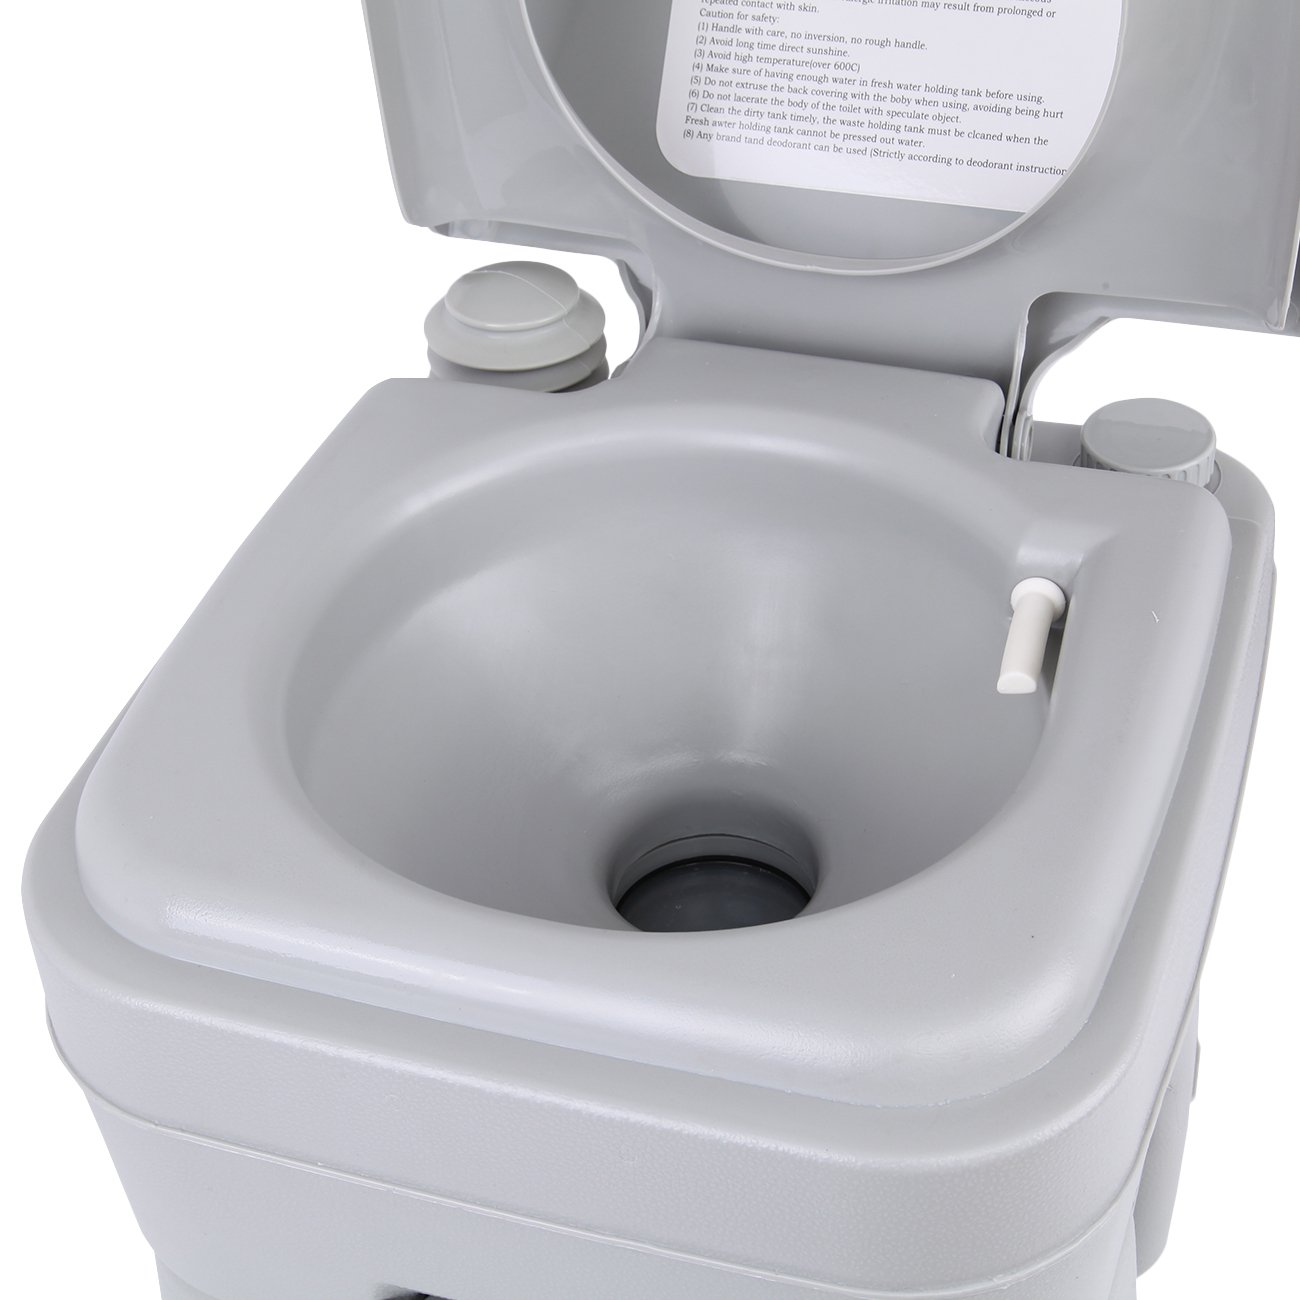 Ridgeyard Camping Toilette 20 Deluxe Voyage Portable Chimie De